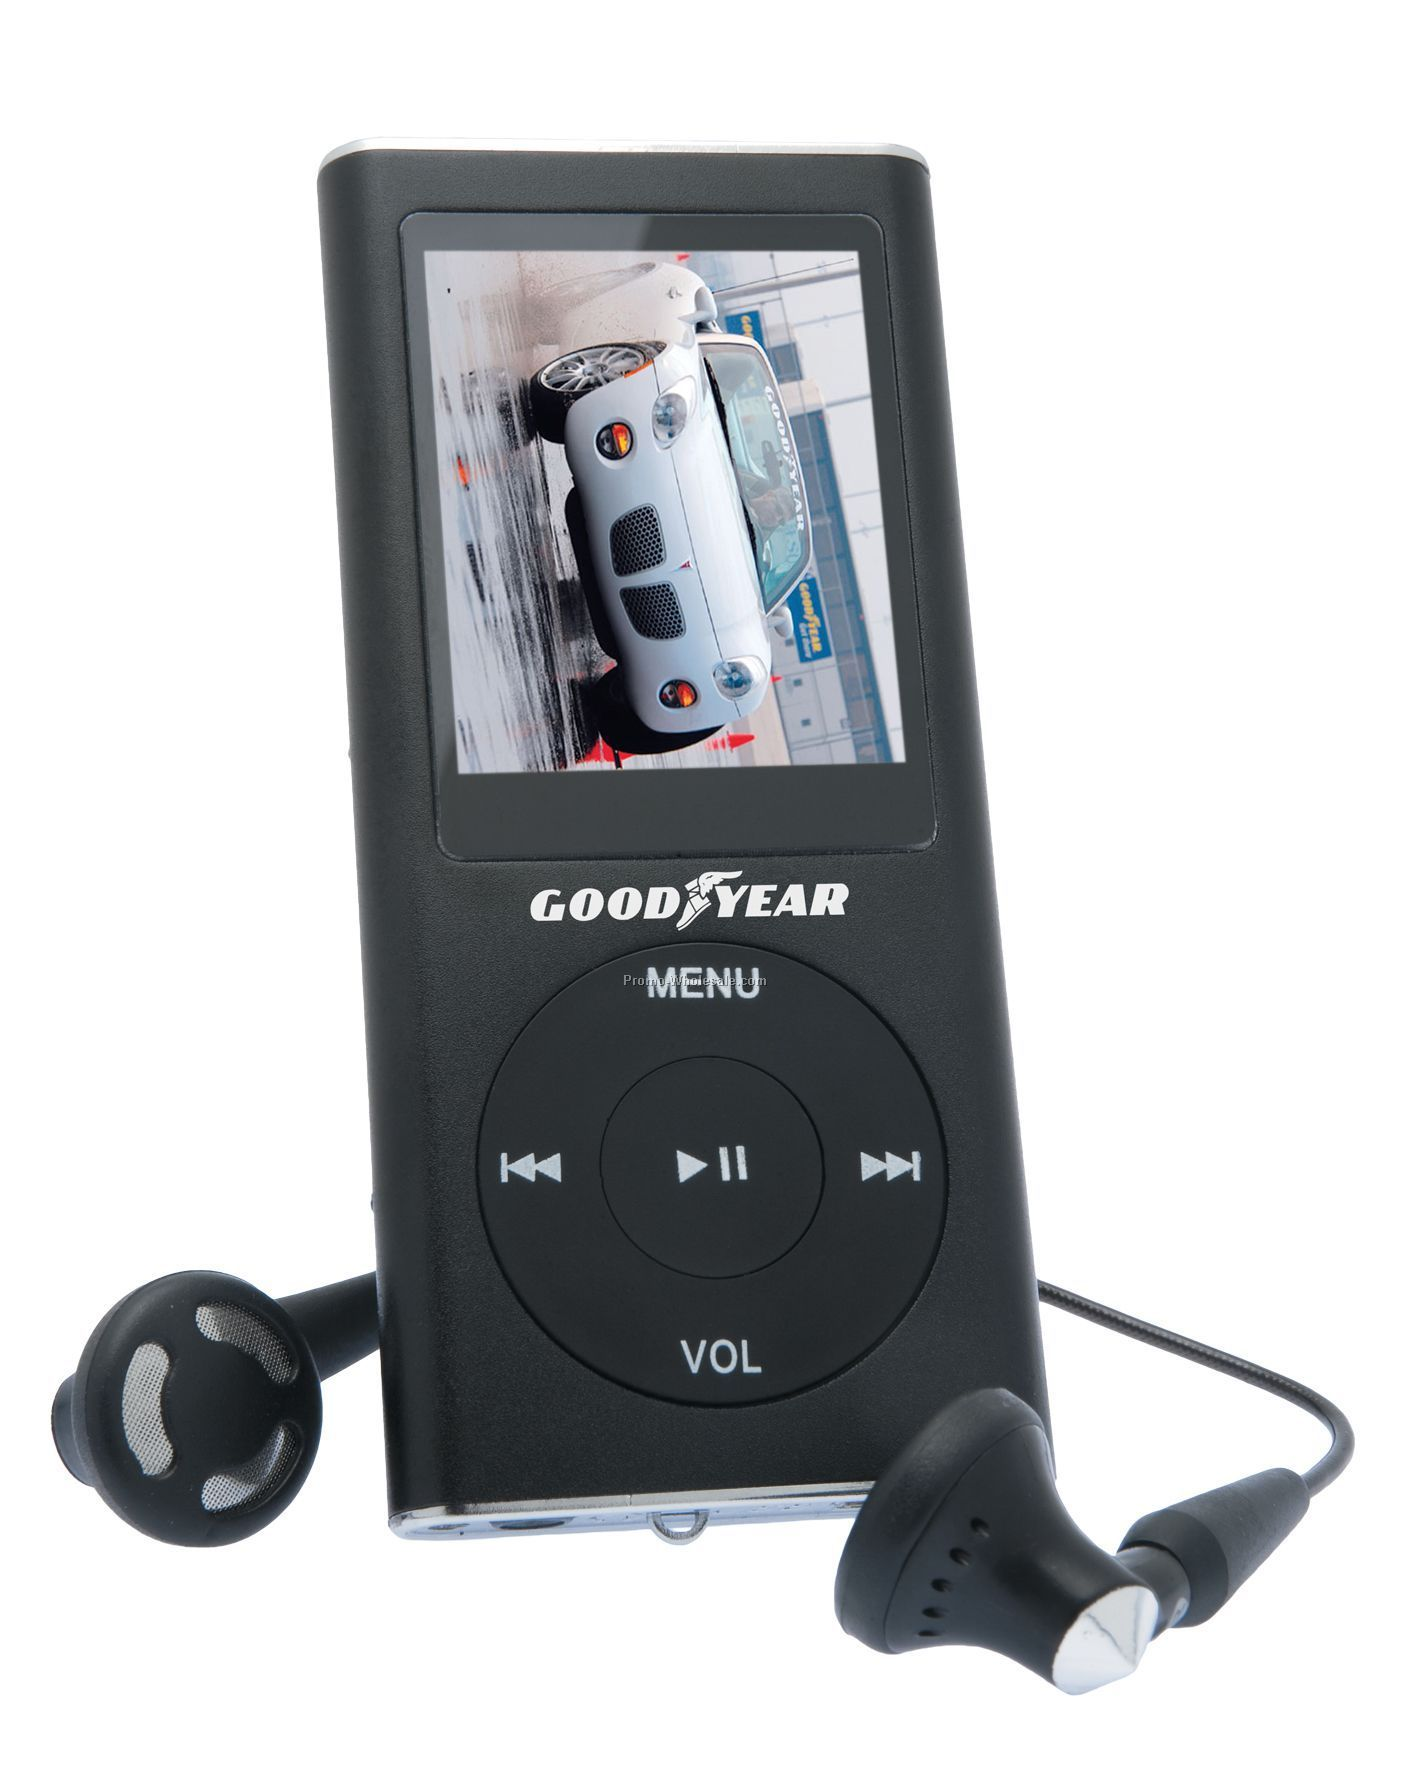 Juba Portable Media Player - Black